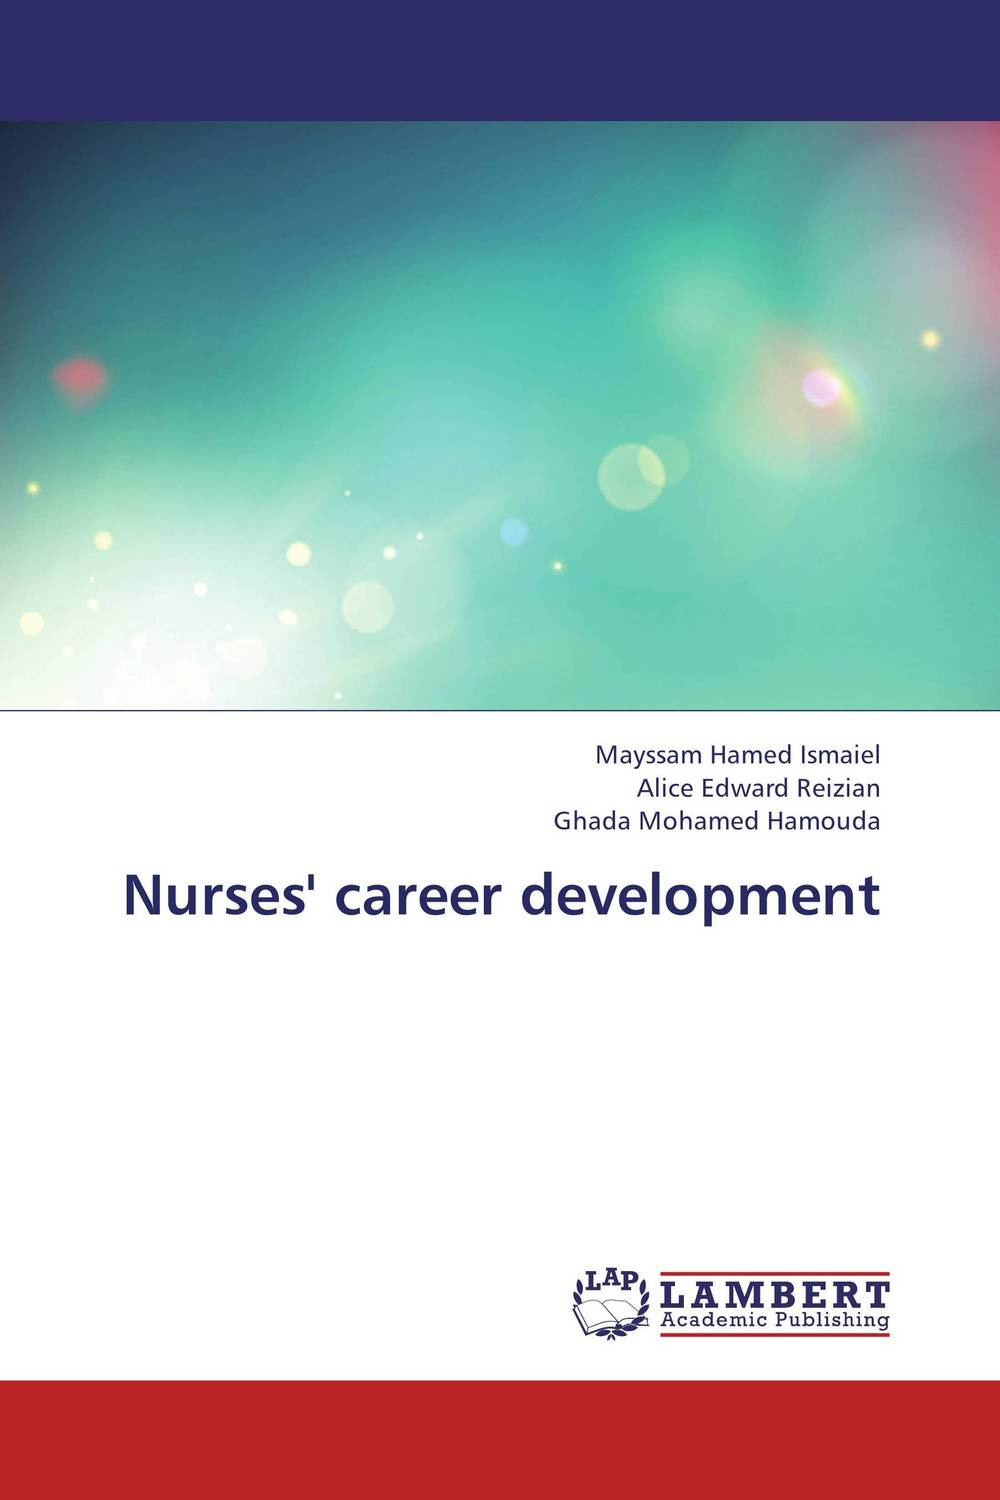 Nurses' career development the assistant principalship as a career